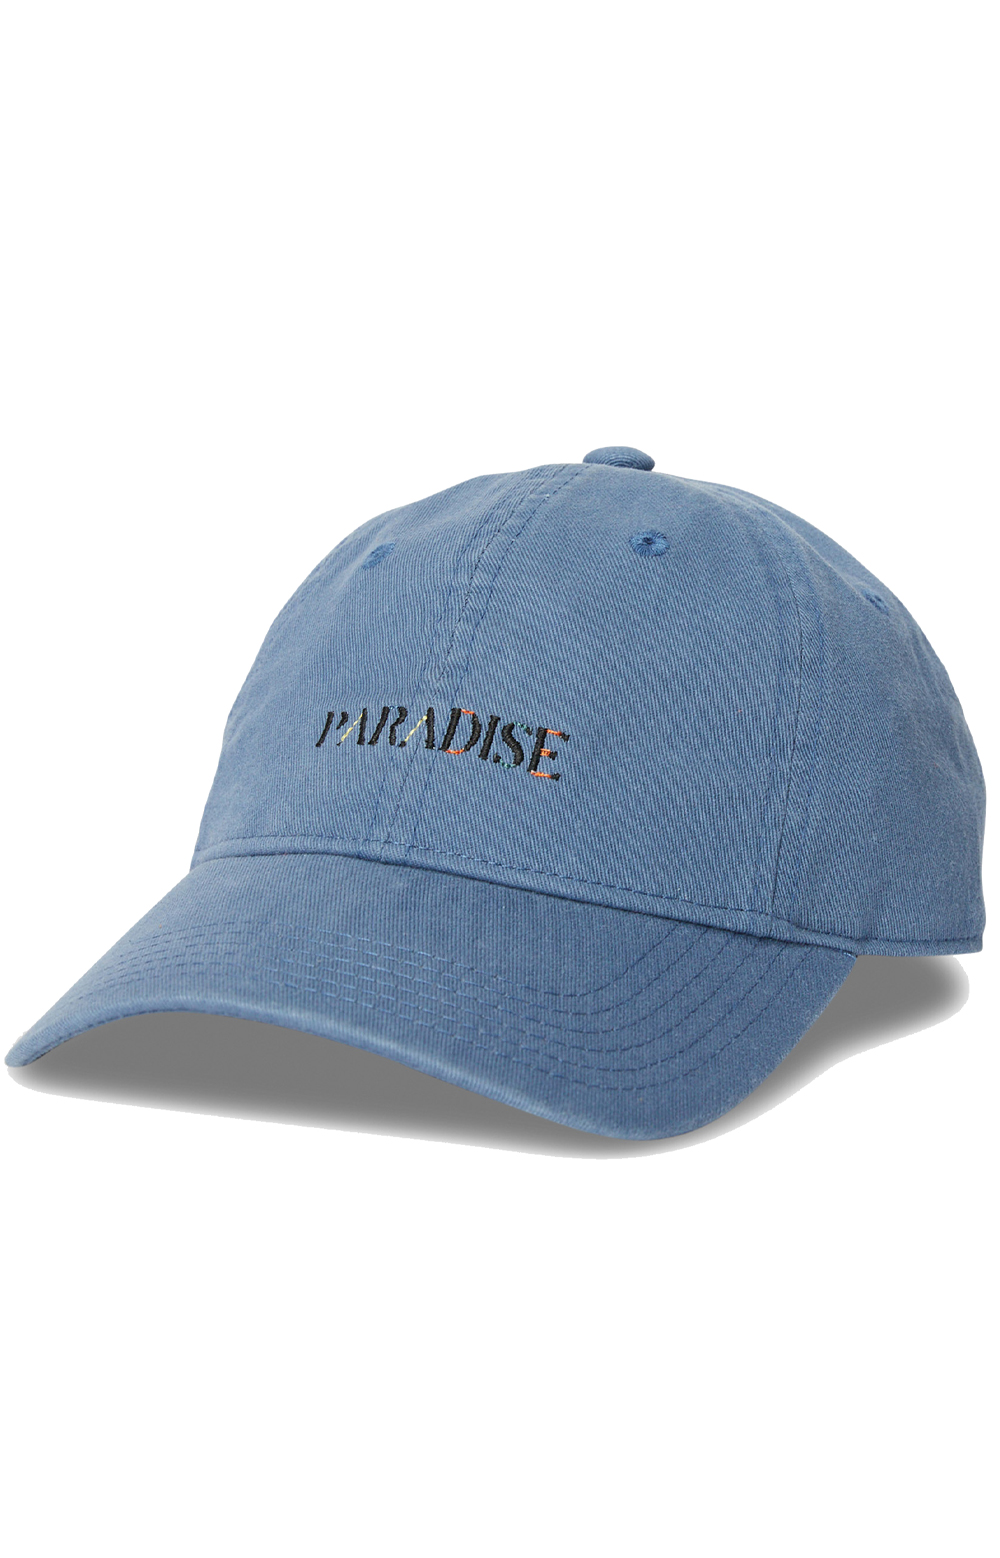 Paradise Dad Hat - Blue